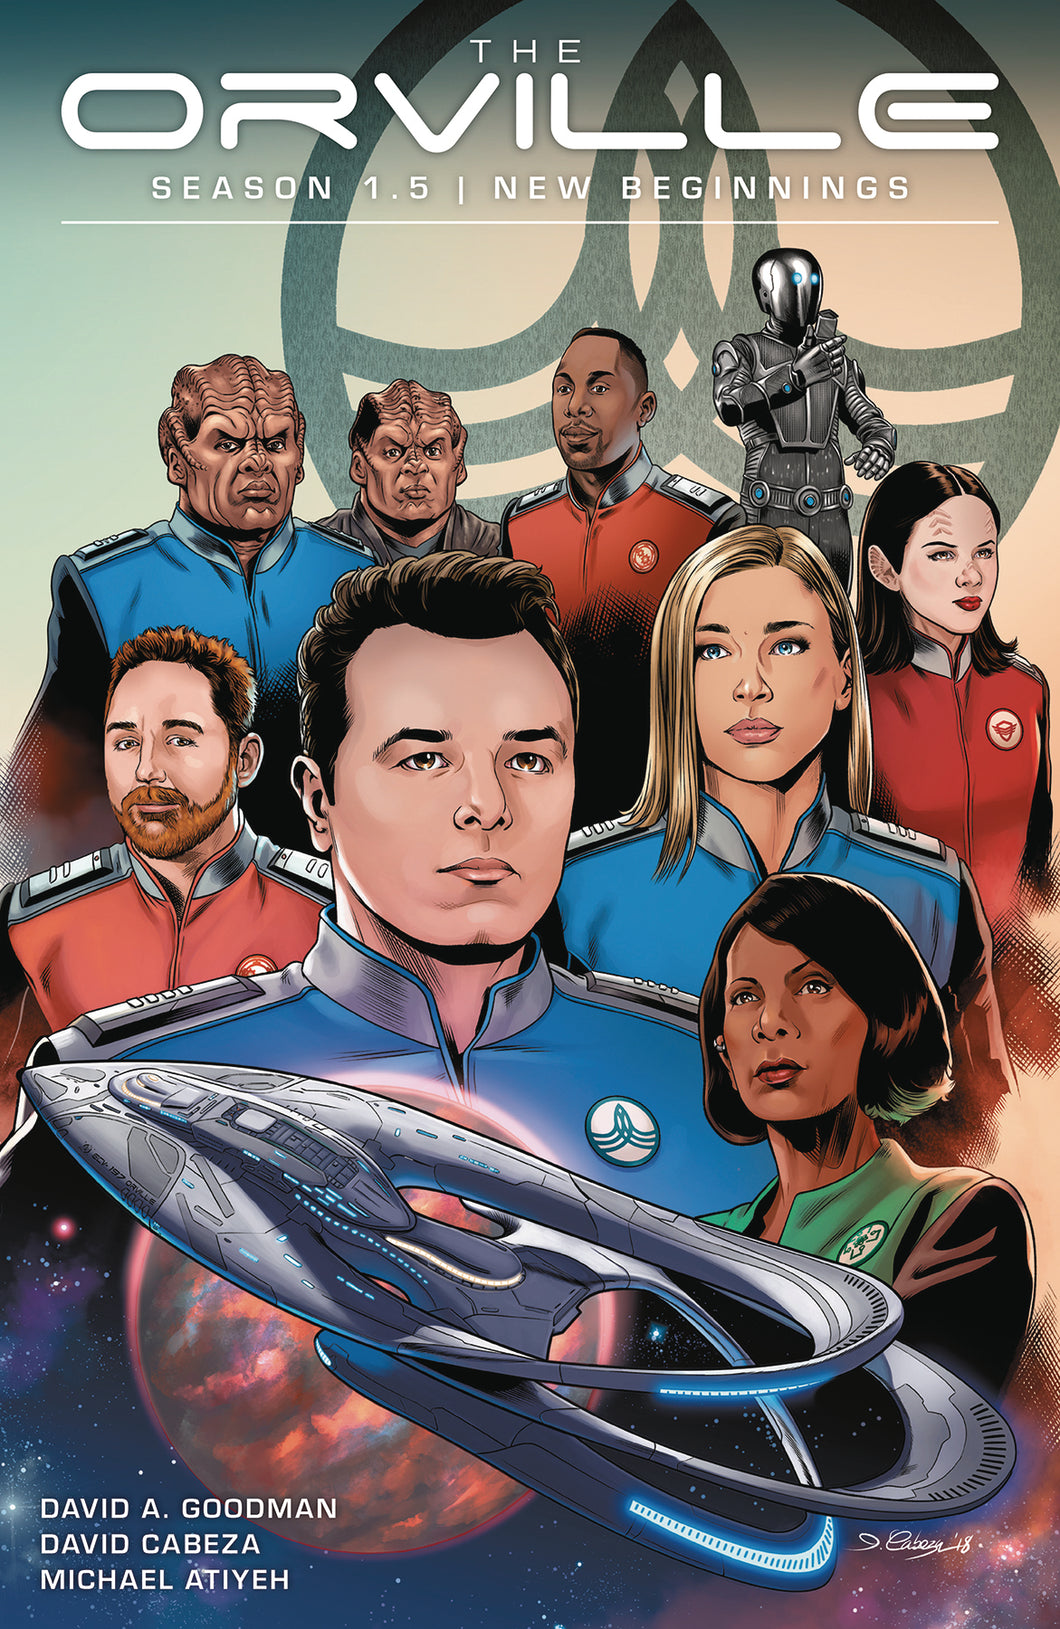 ORVILLE SEASON 1.5 TP VOL 01 NEW BEGINNINGS (C: 0-1-2)